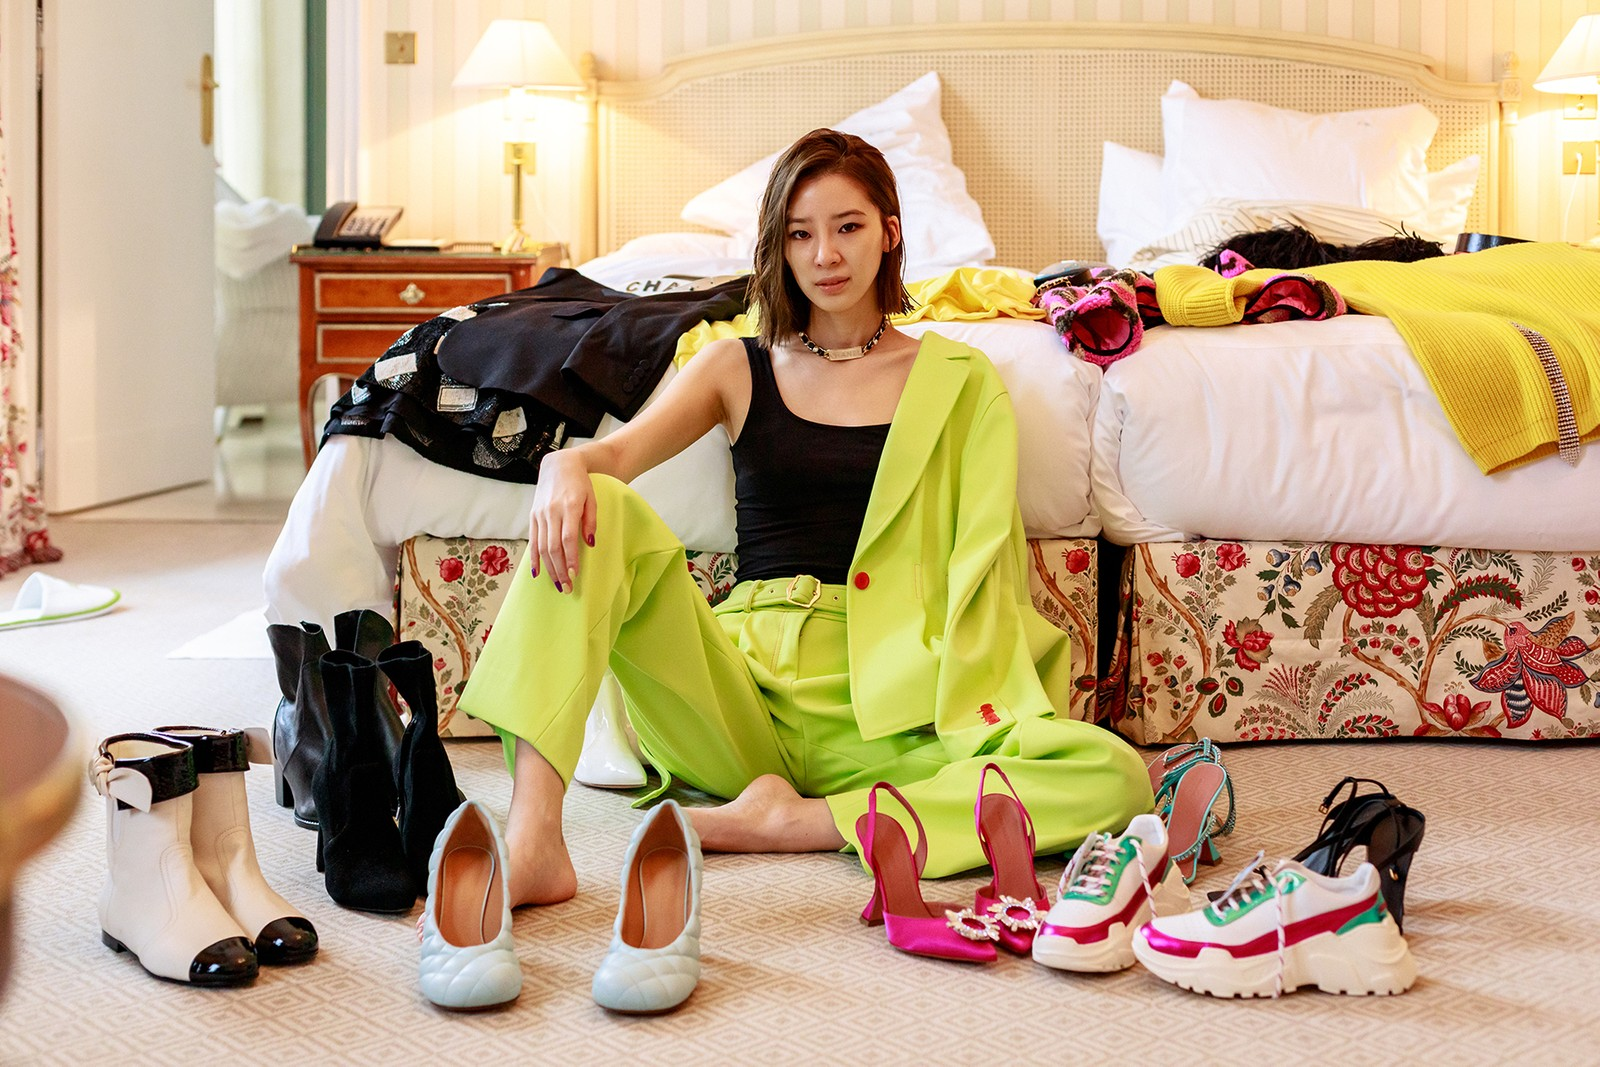 Irene Kim Street Style Influencer Celebrity Korean Model Pink Amina Muaddi High Heels Neon Green Sies Marjan Suit Hotel Room Bed Paris Fashion Week Spring Summer 2020 Hair